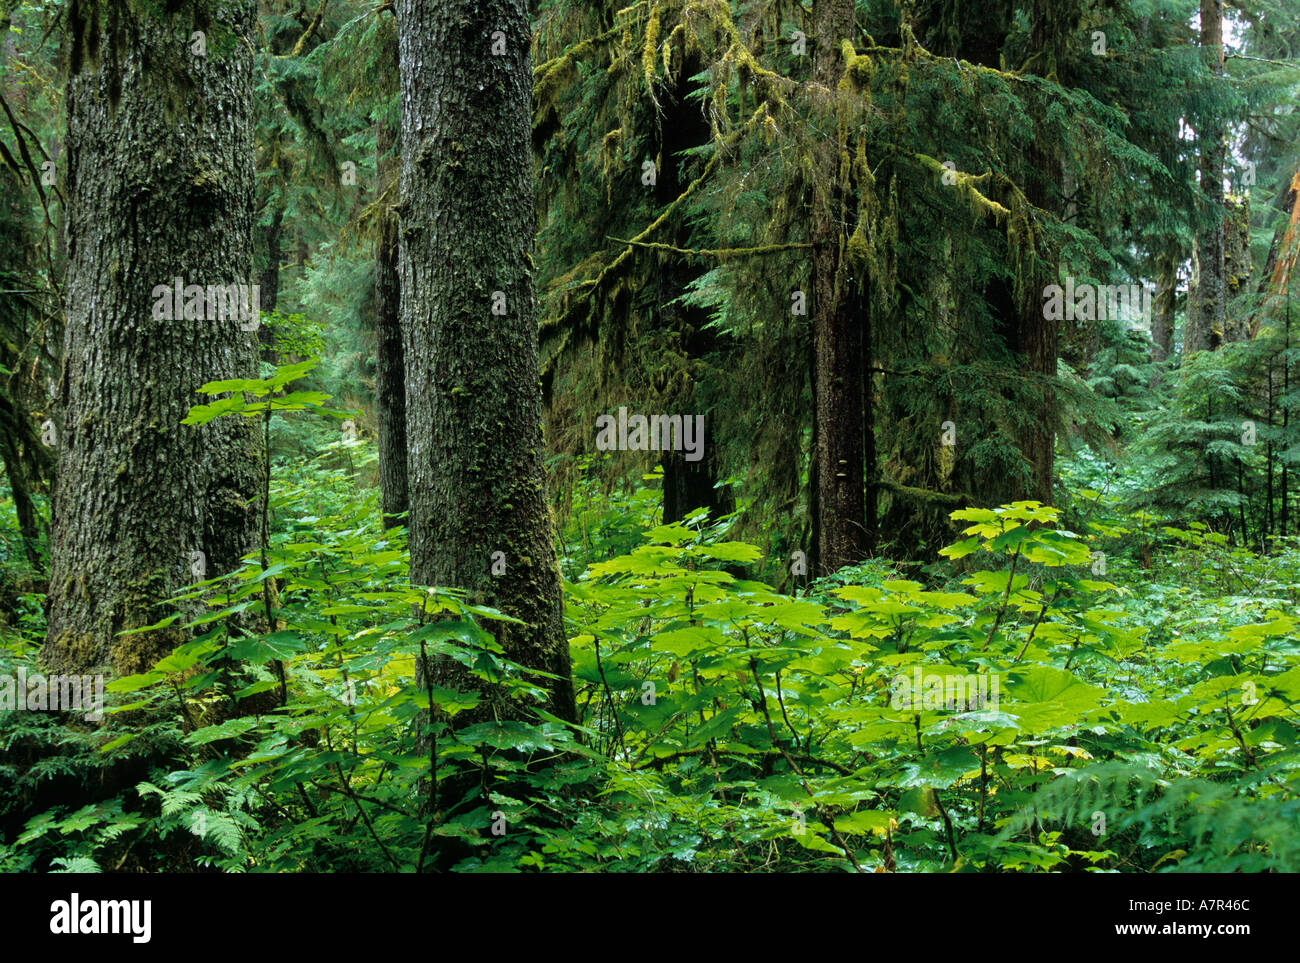 lush rainforest of southeast alaska, tongass national forest near town of kake, kupreanof island - Stock Image